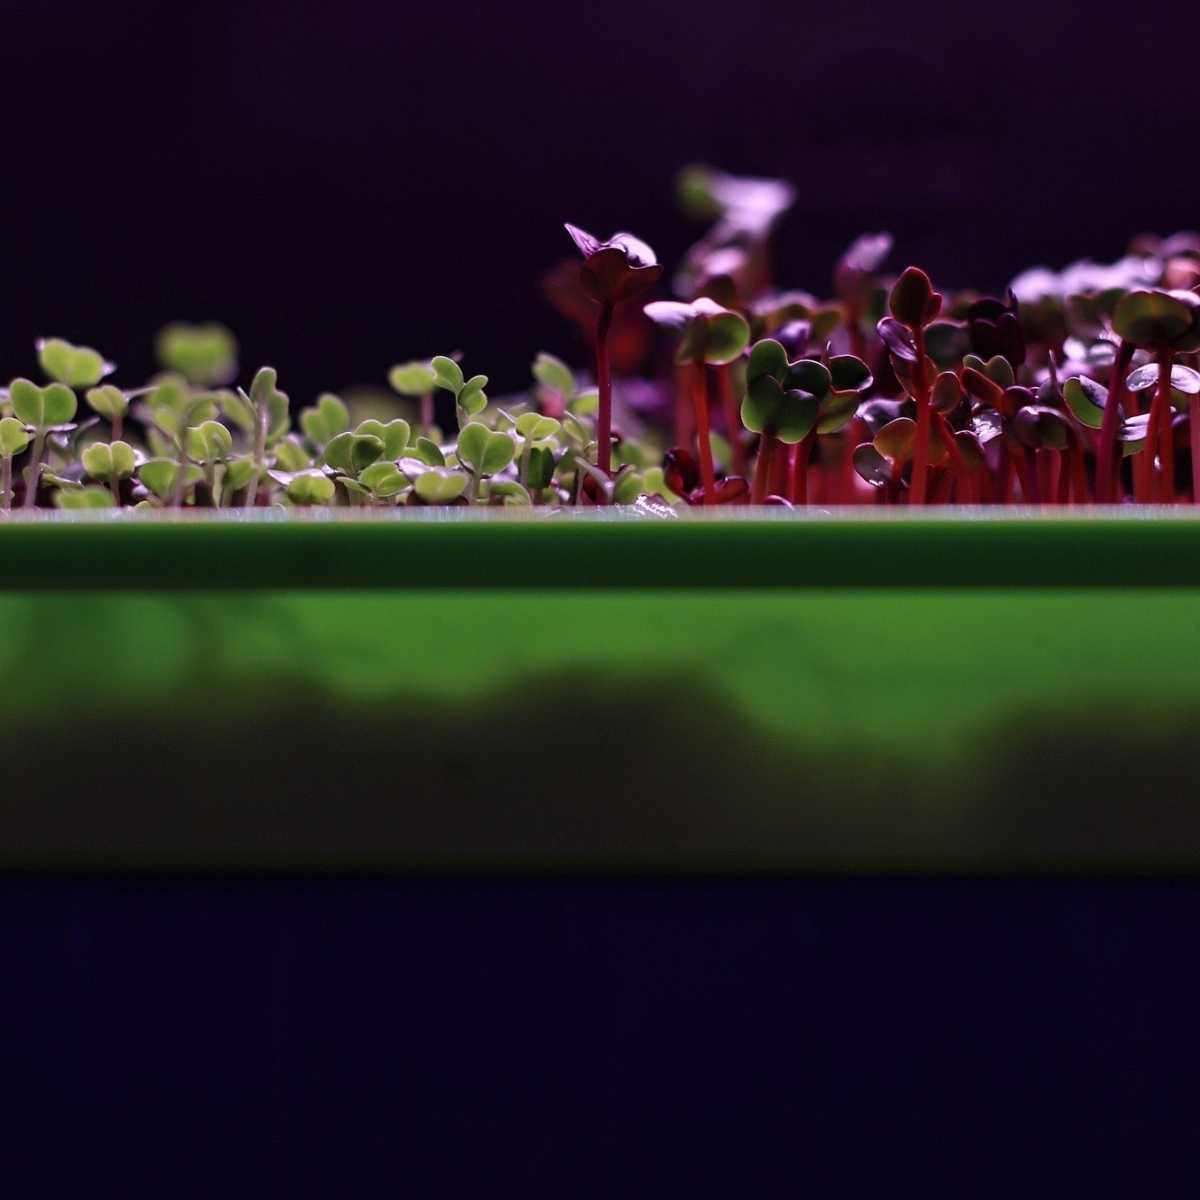 Microgreens grown with lights